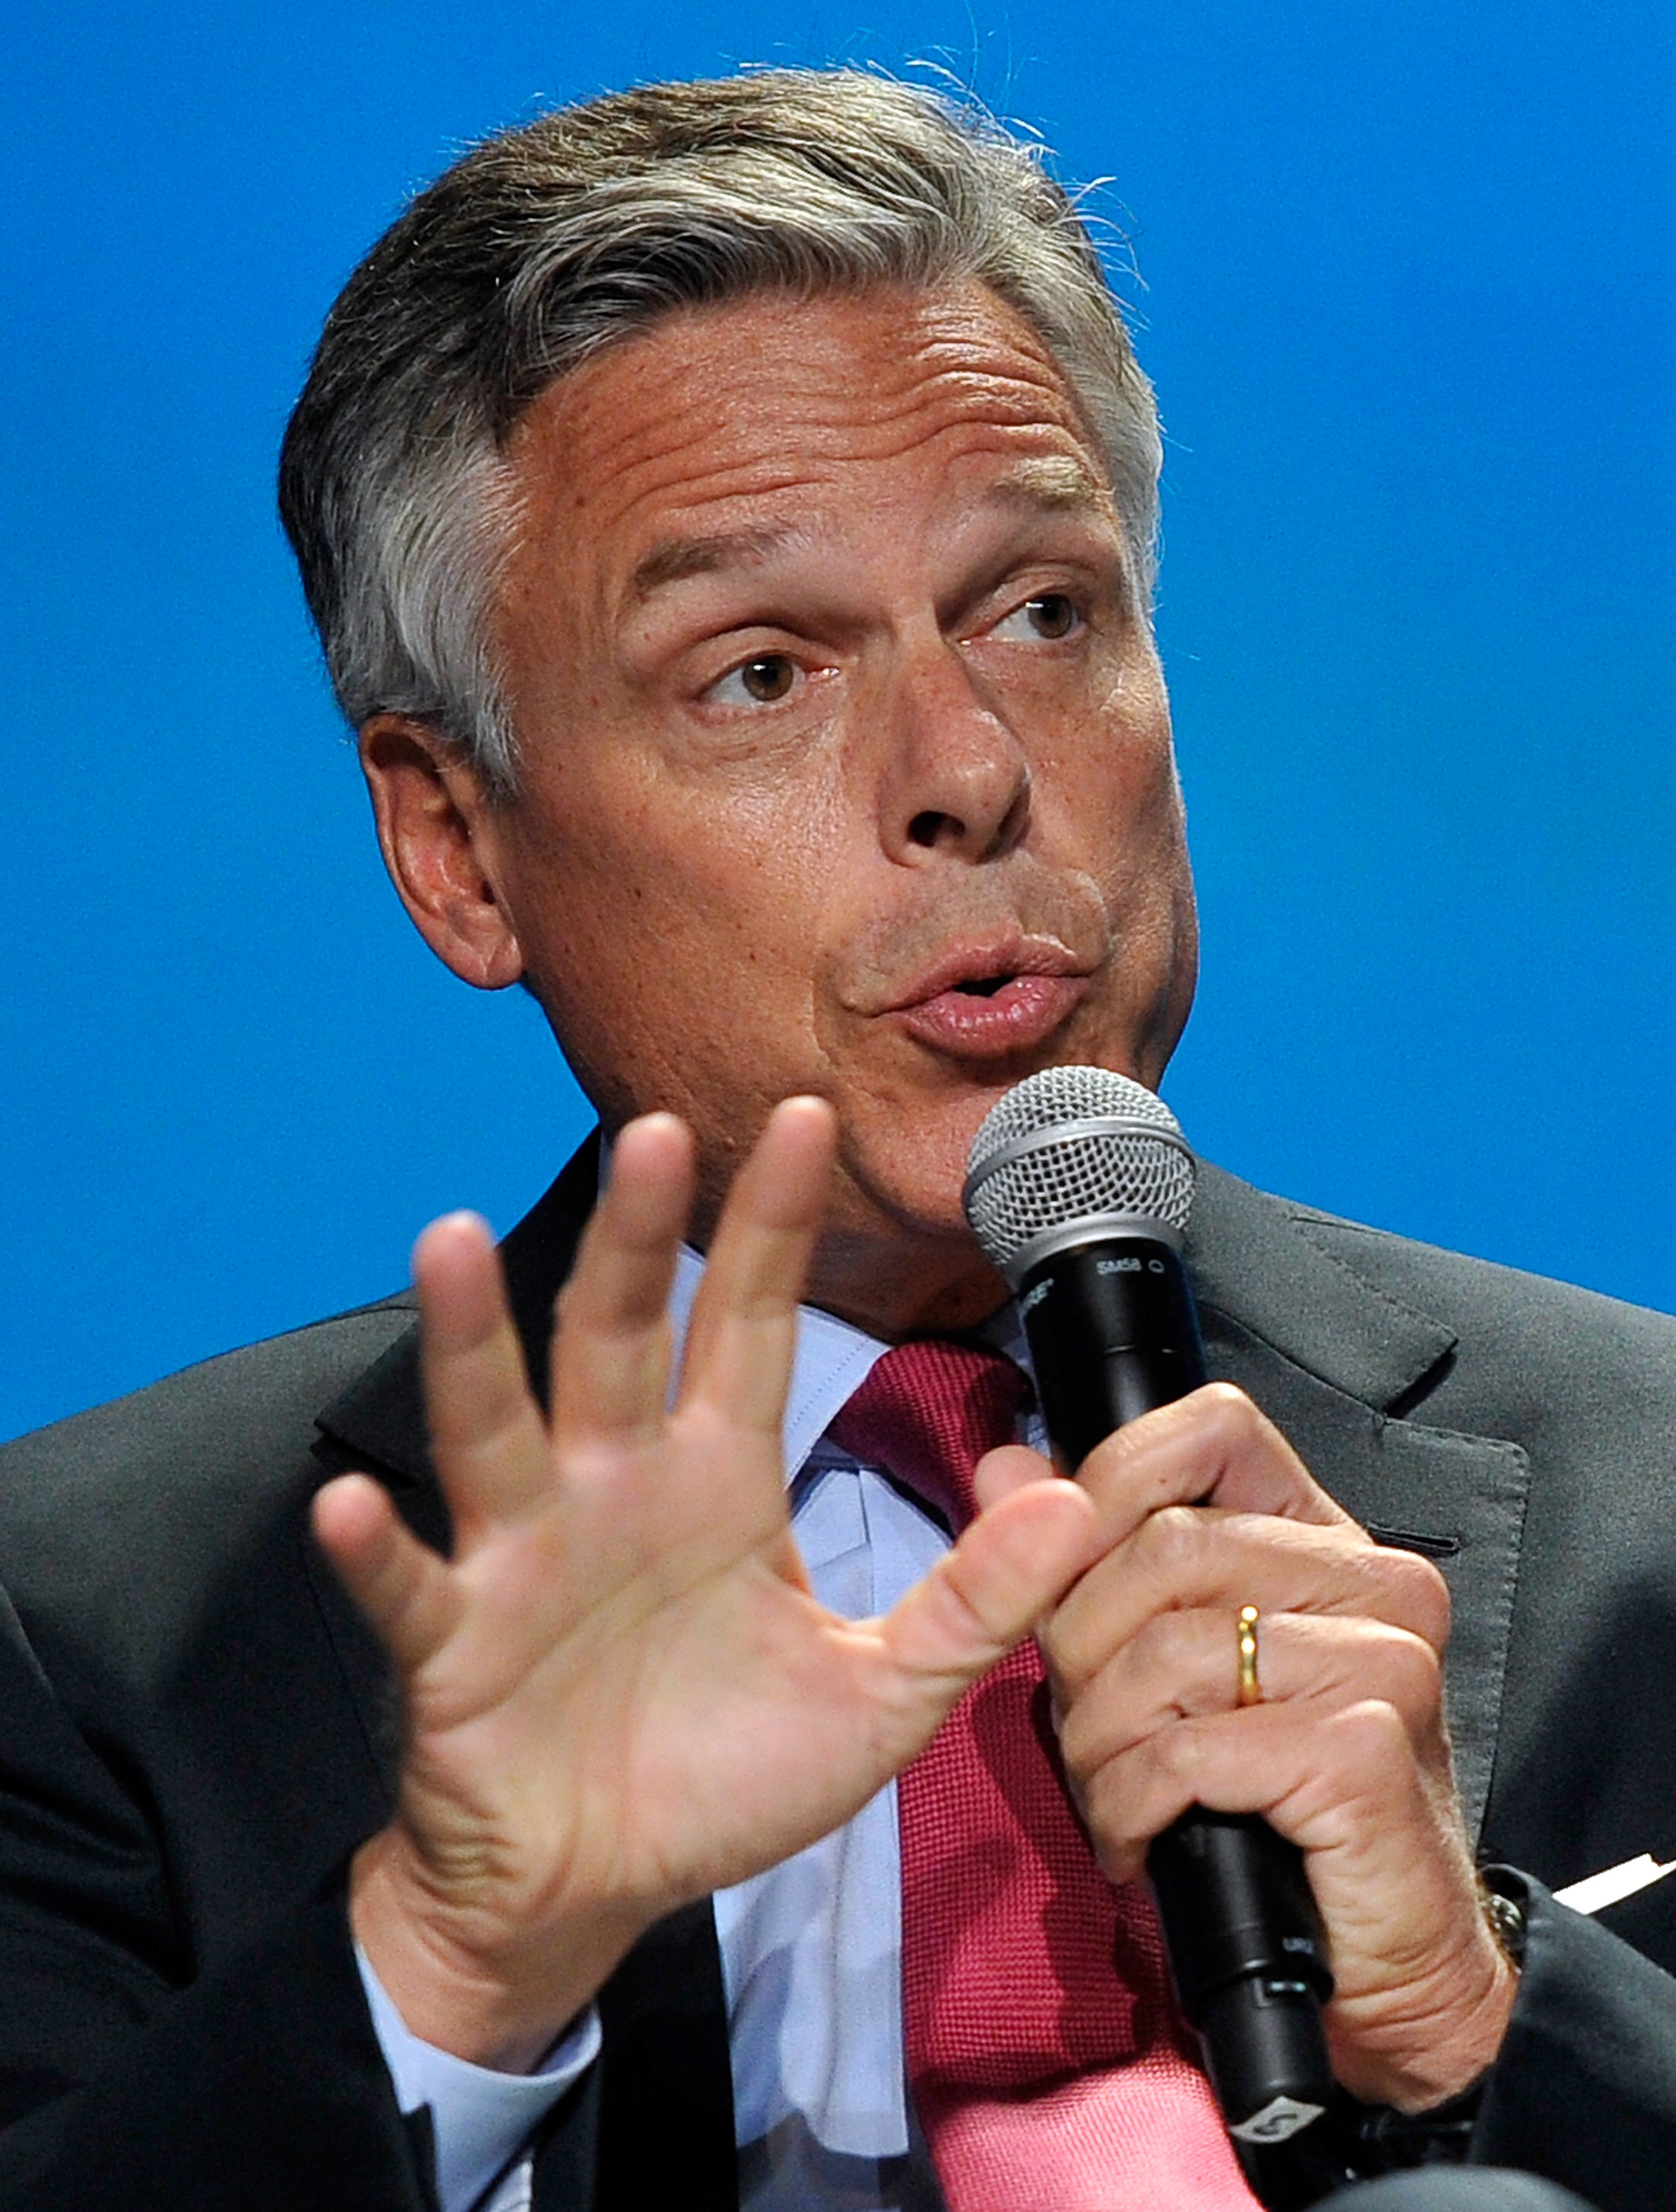 Former Utah Gov. Jon Huntsman Jr. speaks at the National Clean Energy Summit 7.0 at the Mandalay Bay Convention Center on September 4, 2014 in Las Vegas, Nevada.